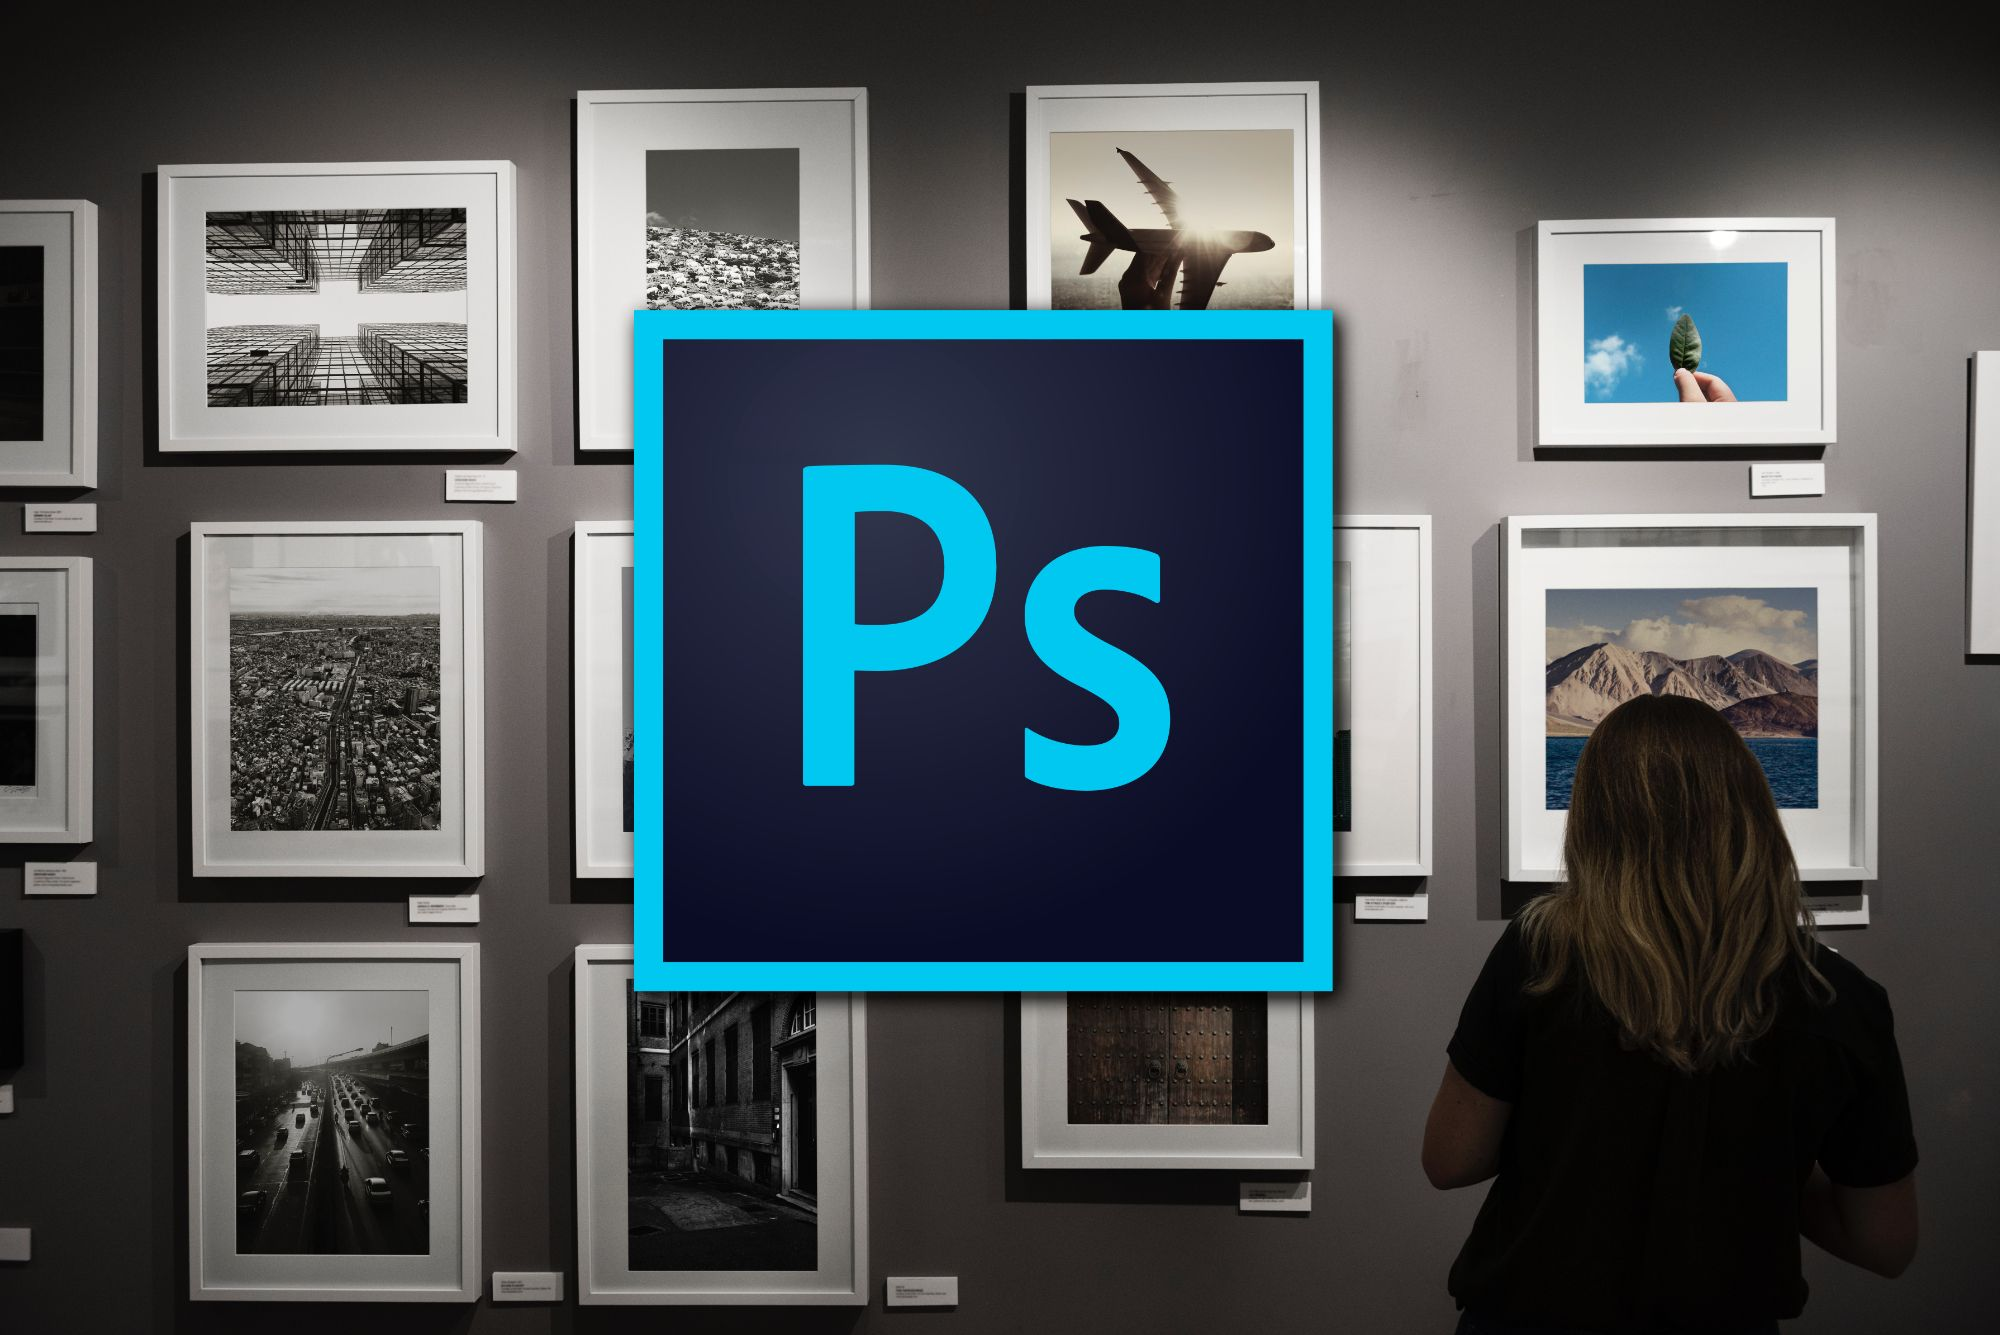 Learn How to Use Photoshop for Free - 7 Great Online Classes and Tutorials